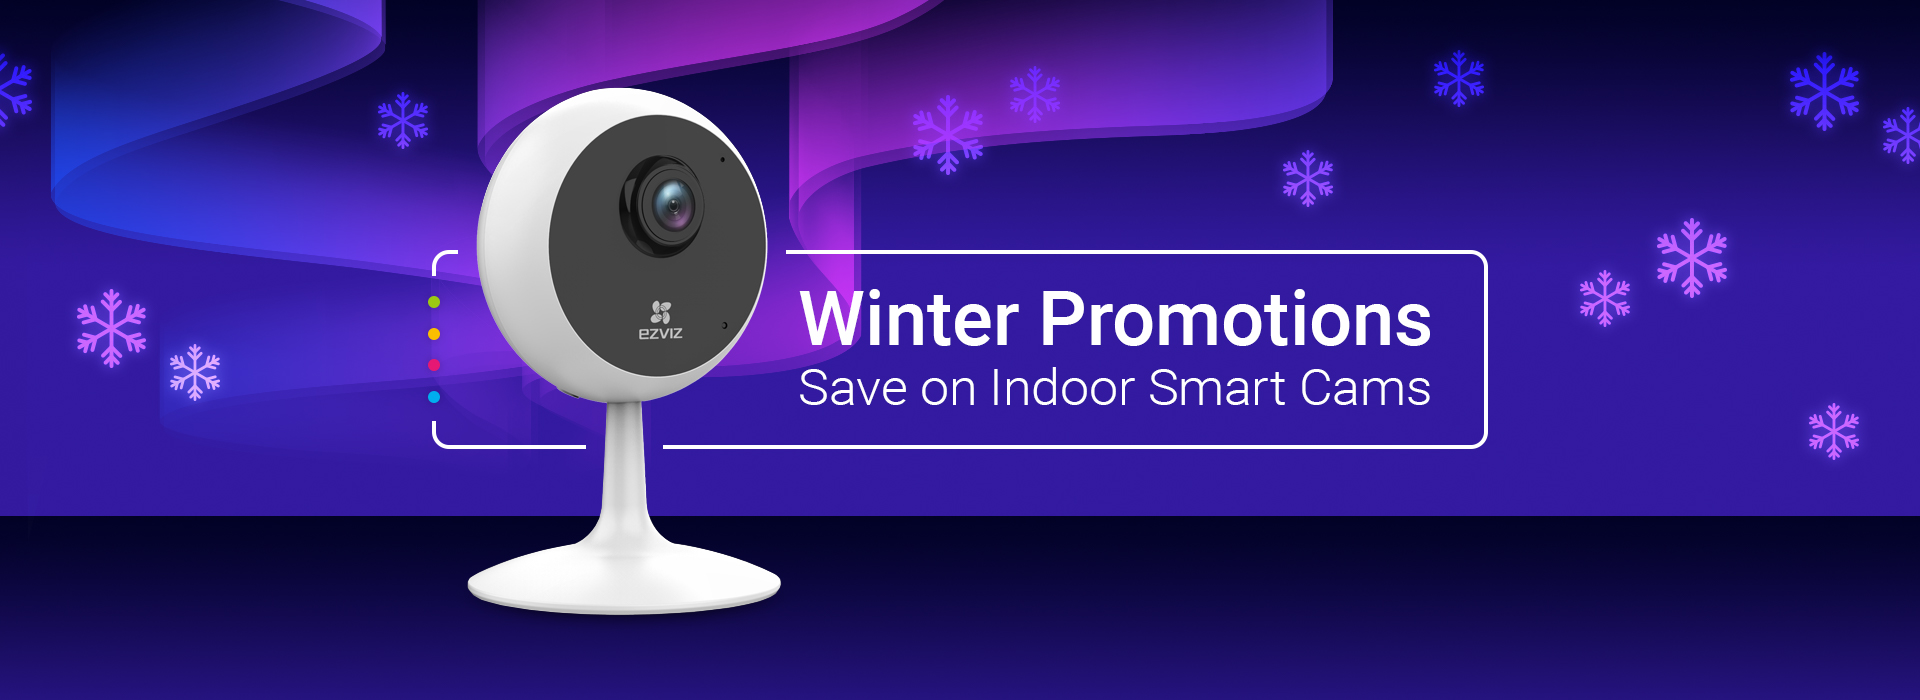 Winter Promotions